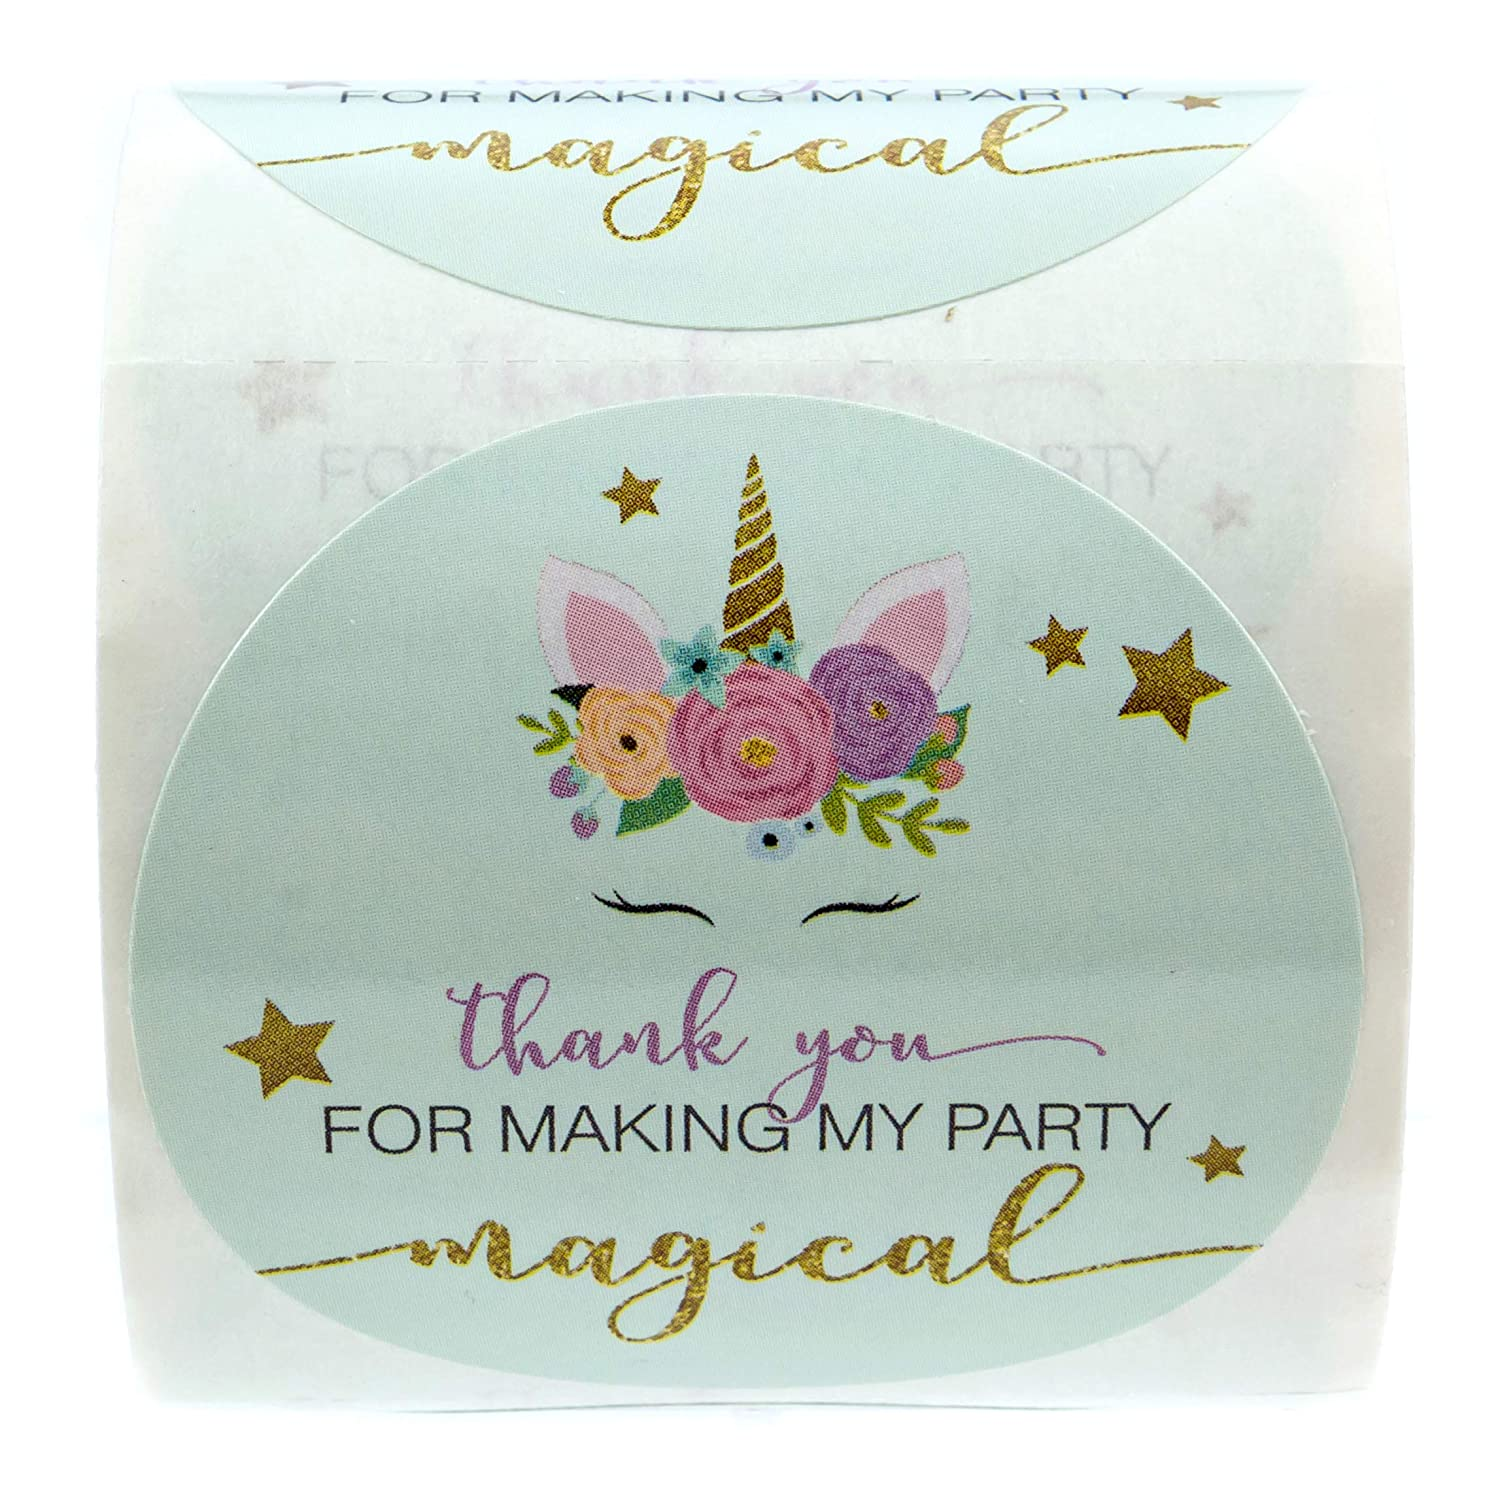 250 Thank You Stickers Per Roll SBlabels 2 Unicorn Stickers//Faux Glitter Thanks for Making My Party Magical Sticker